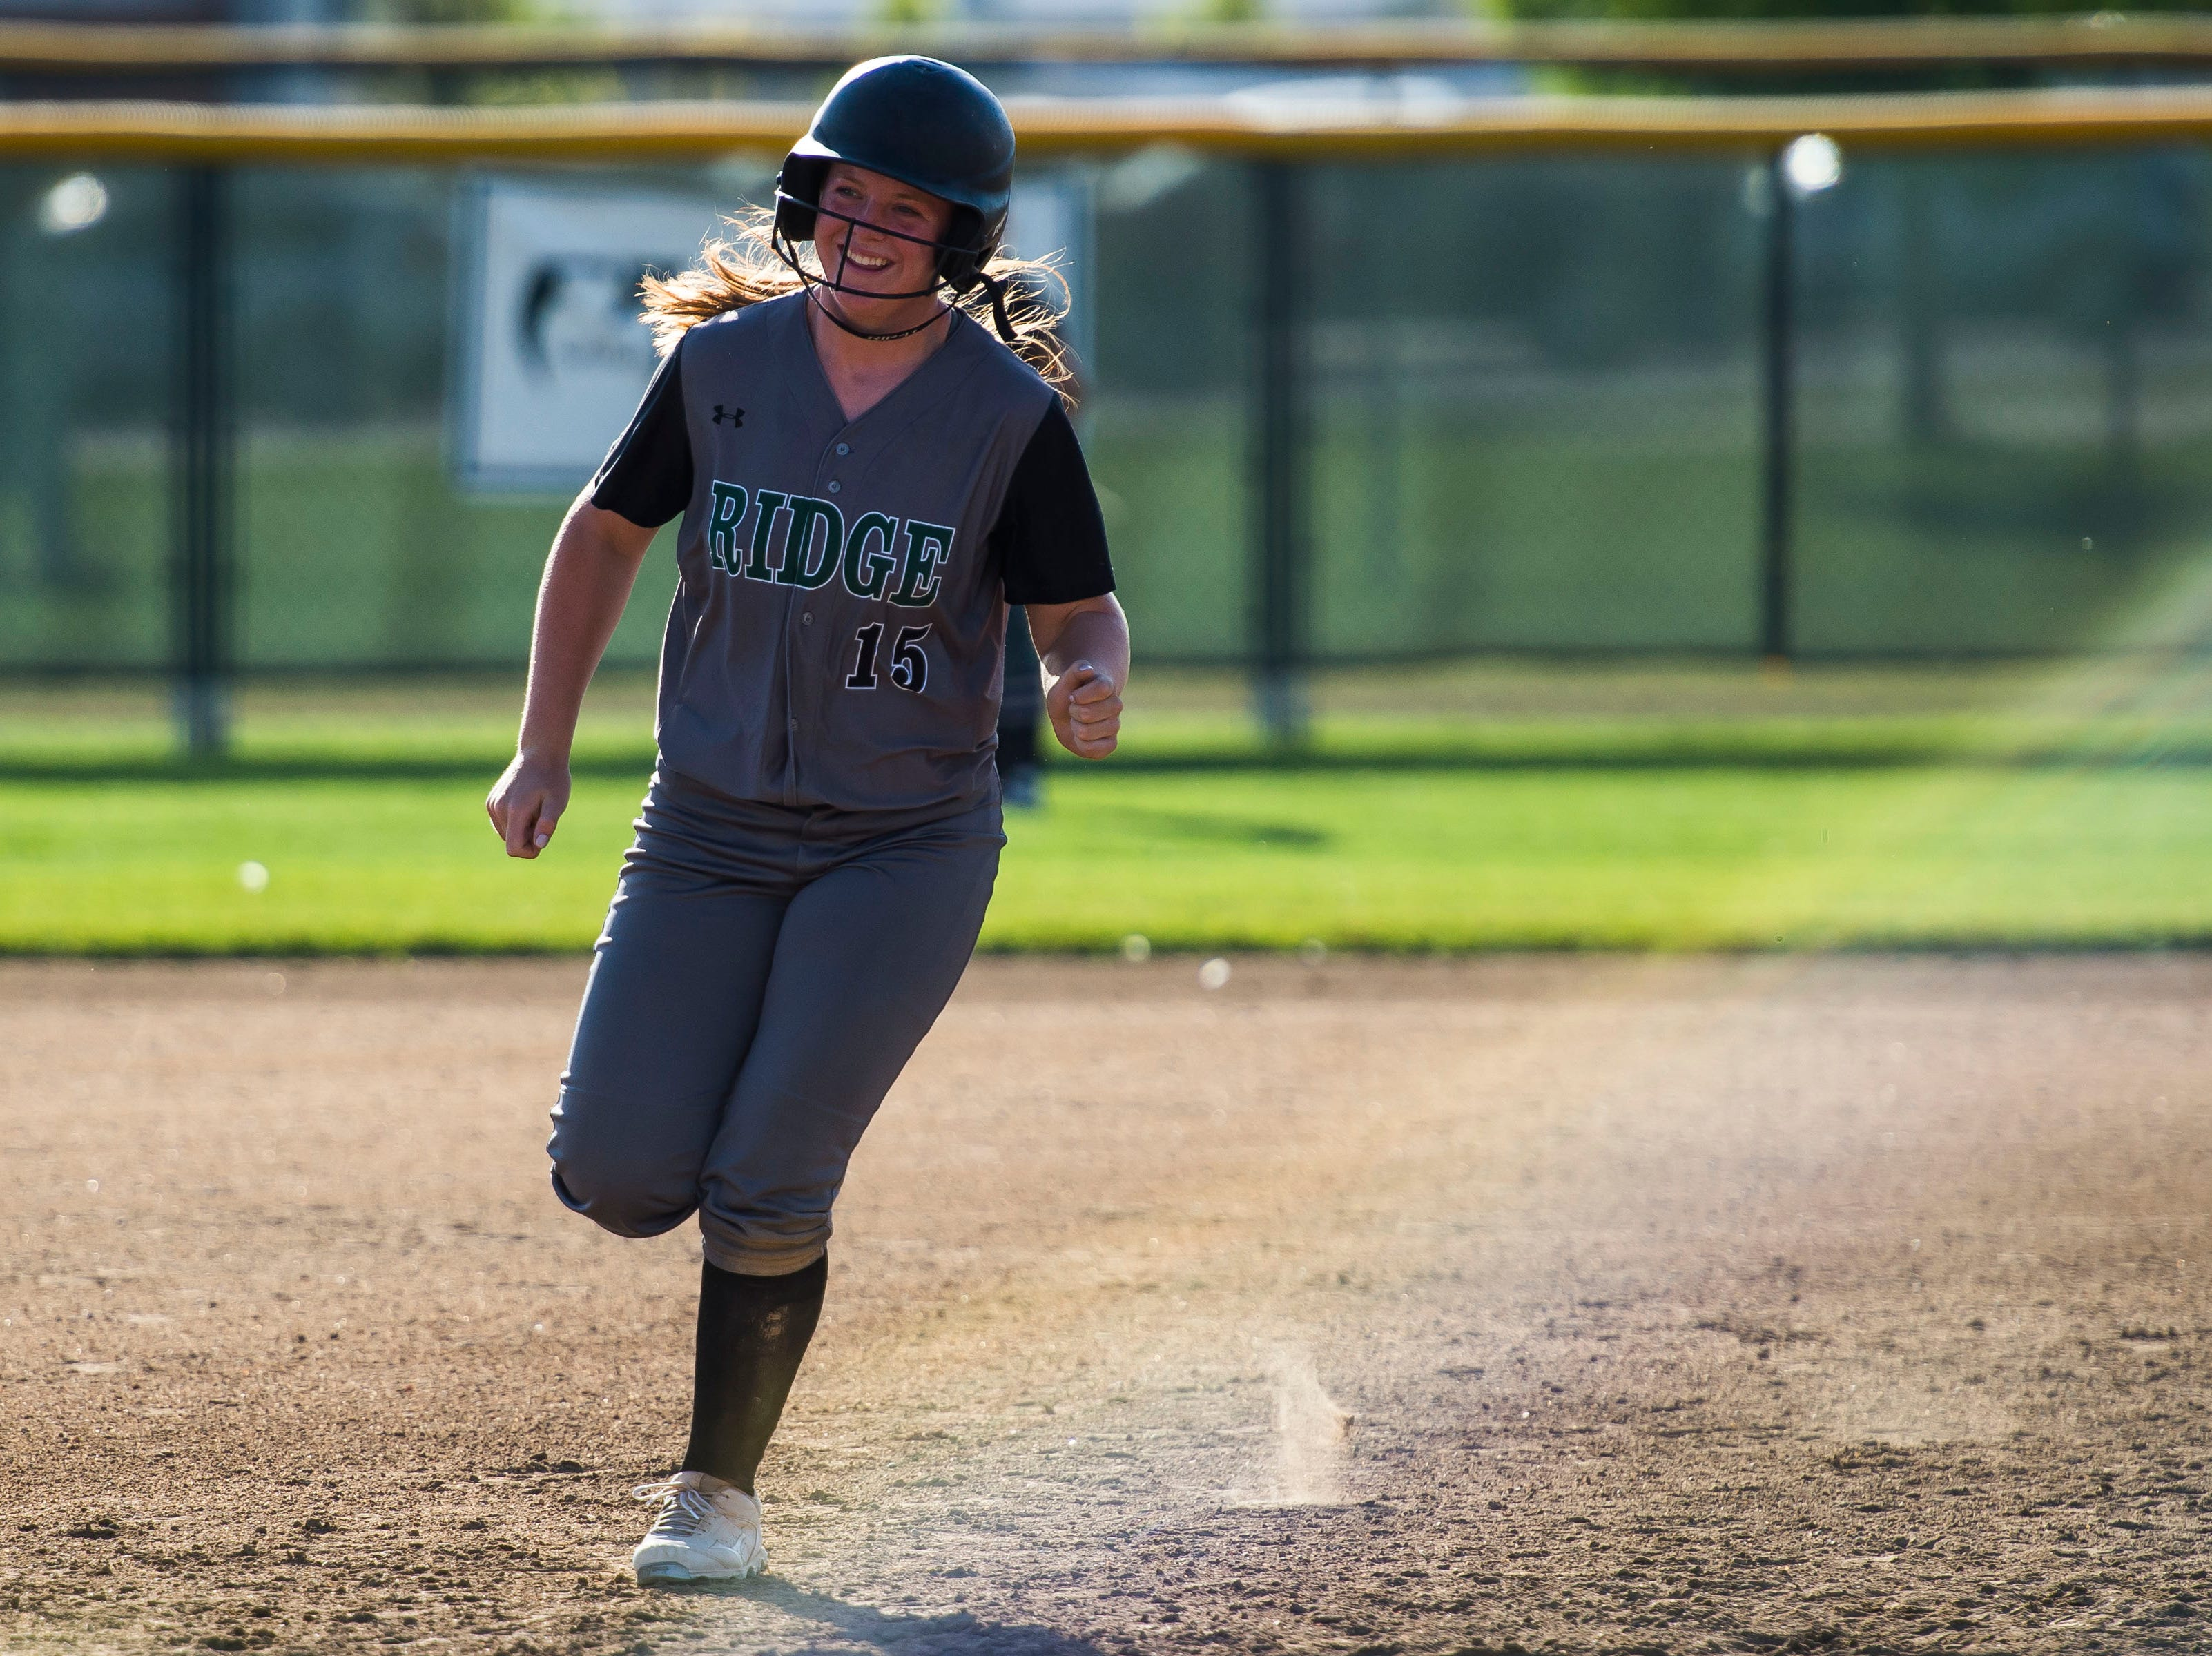 Fossil Ridge High School senior outfielder Mia Moddelmog (15) rounds the bases after hitting a grand slam against Fort Collins High School relief pitcher Mason Togher (16) on Tuesday, Sept. 18, 2018, at Fossil Ridge High School in Fort Collins, Colo.